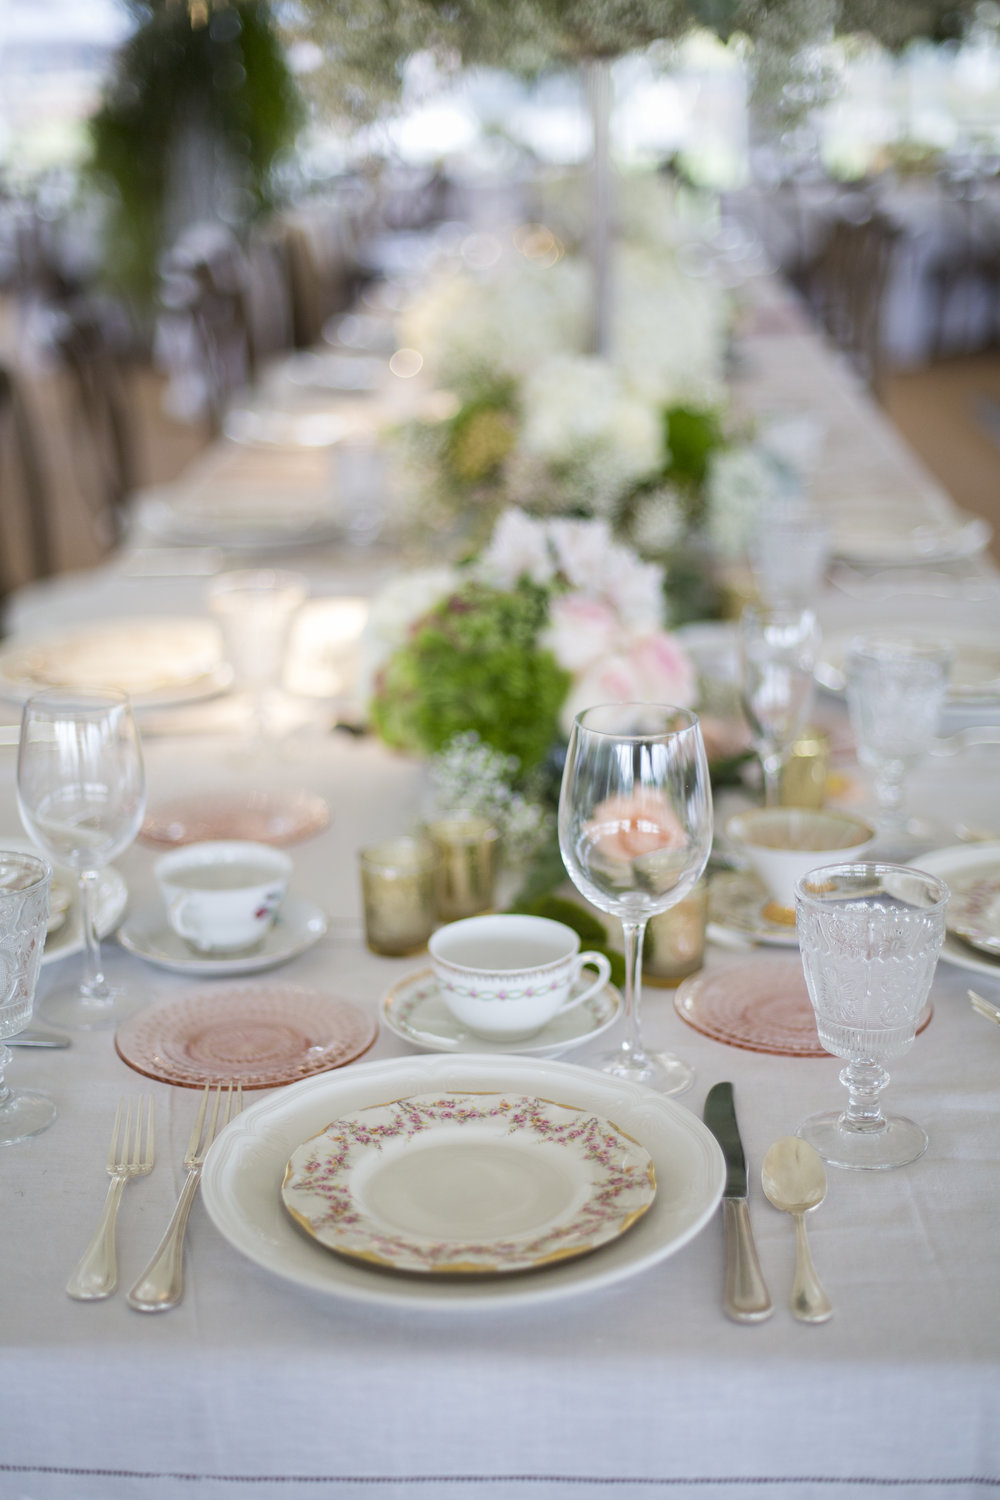 chicago-illinois-luxury-vintage-wedding-decor-party-event-rentals